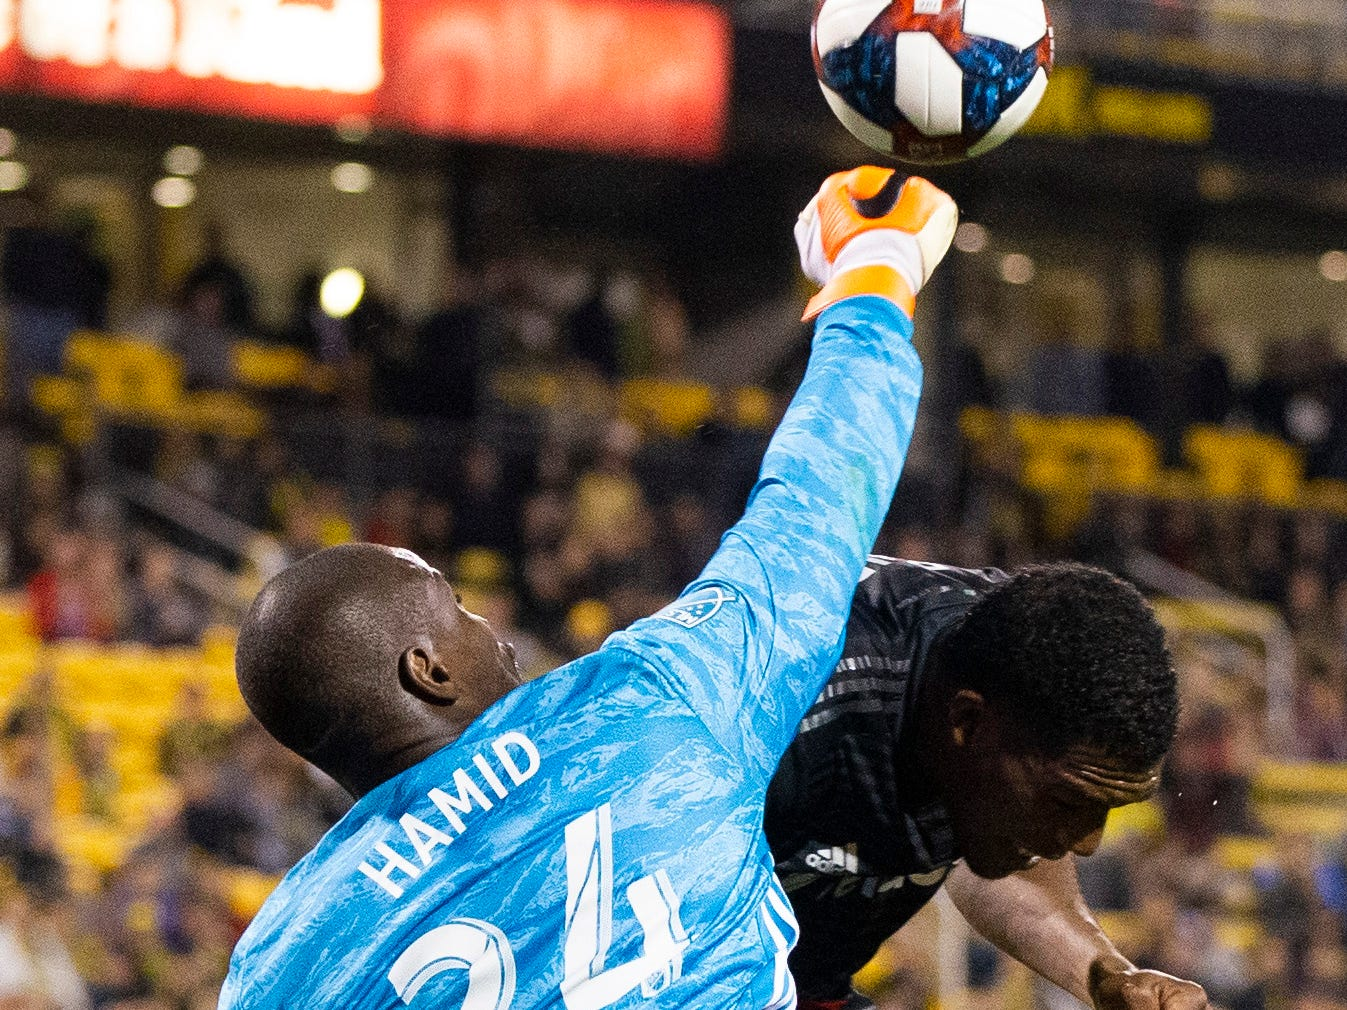 April 24: D.C. United goalkeeper Bill Hamid (24) punches the ball away against Columbus Crew SC during the second half at MAPFRE Stadium. D.C. United won the game, 1-0.